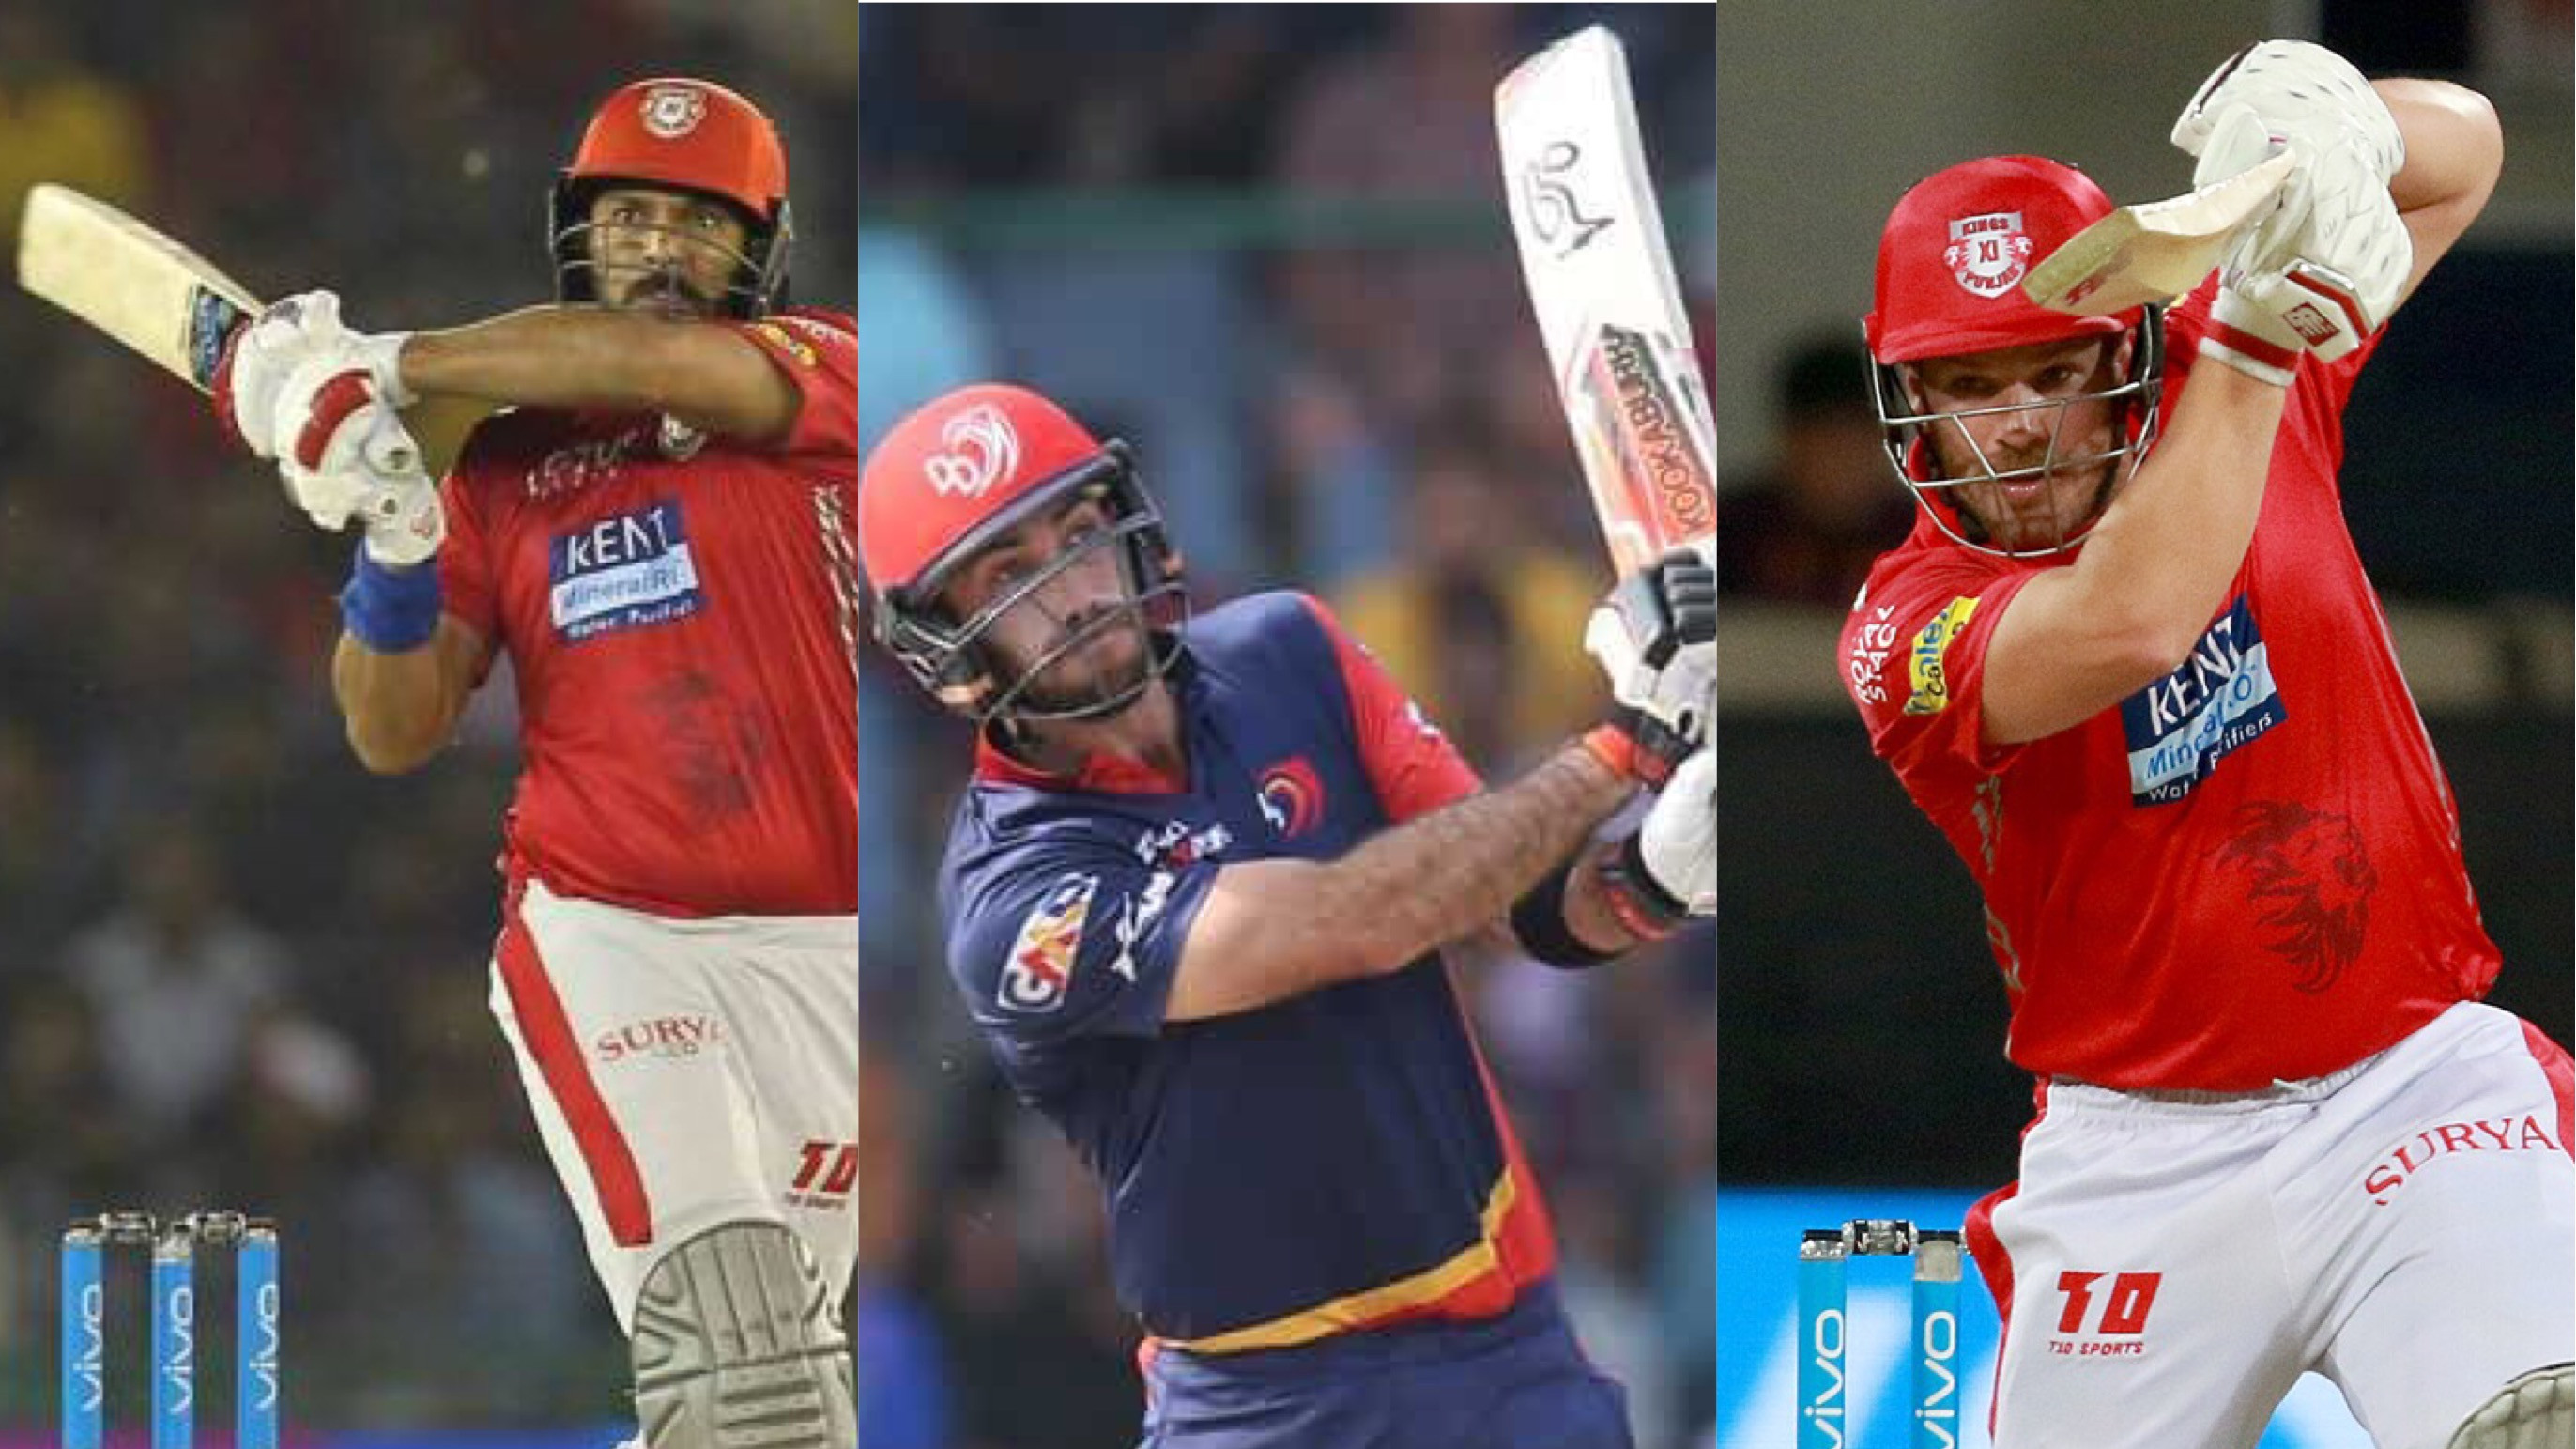 IPL 2019: Finch and Maxwell pull out of IPL Auction; Yuvraj Singh sets base price at 1 crore